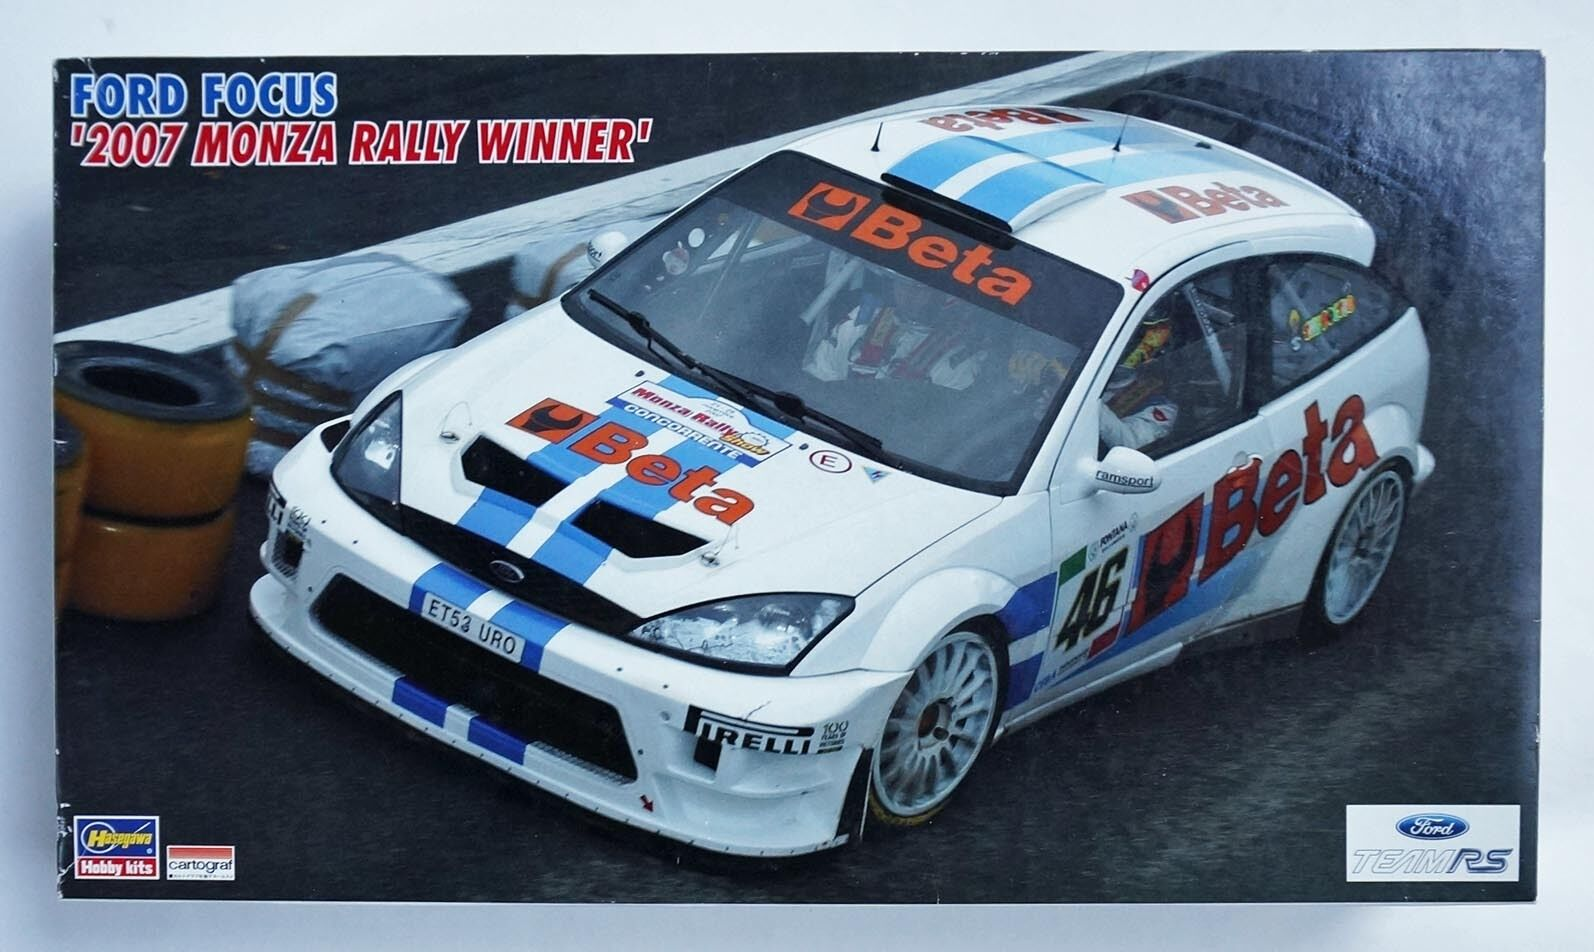 HASEGAWA 1 24 Ford Focus WRC 2007 Monza rally winner V.Rossi scale model kit